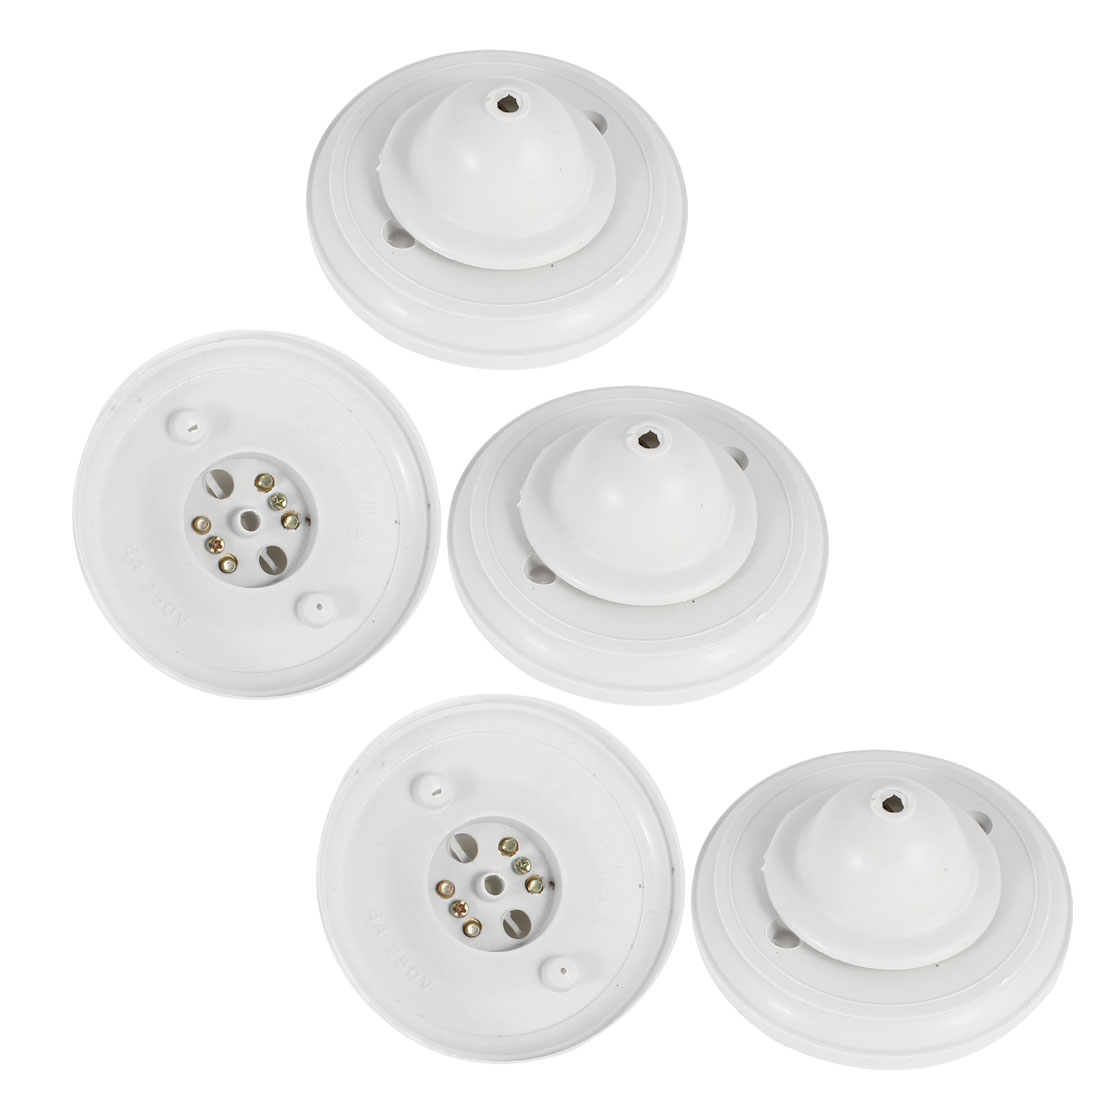 5 Pcs Off White Round Shaped Plastic Ceiling Light Lamp Box Cover AC 250V 6A